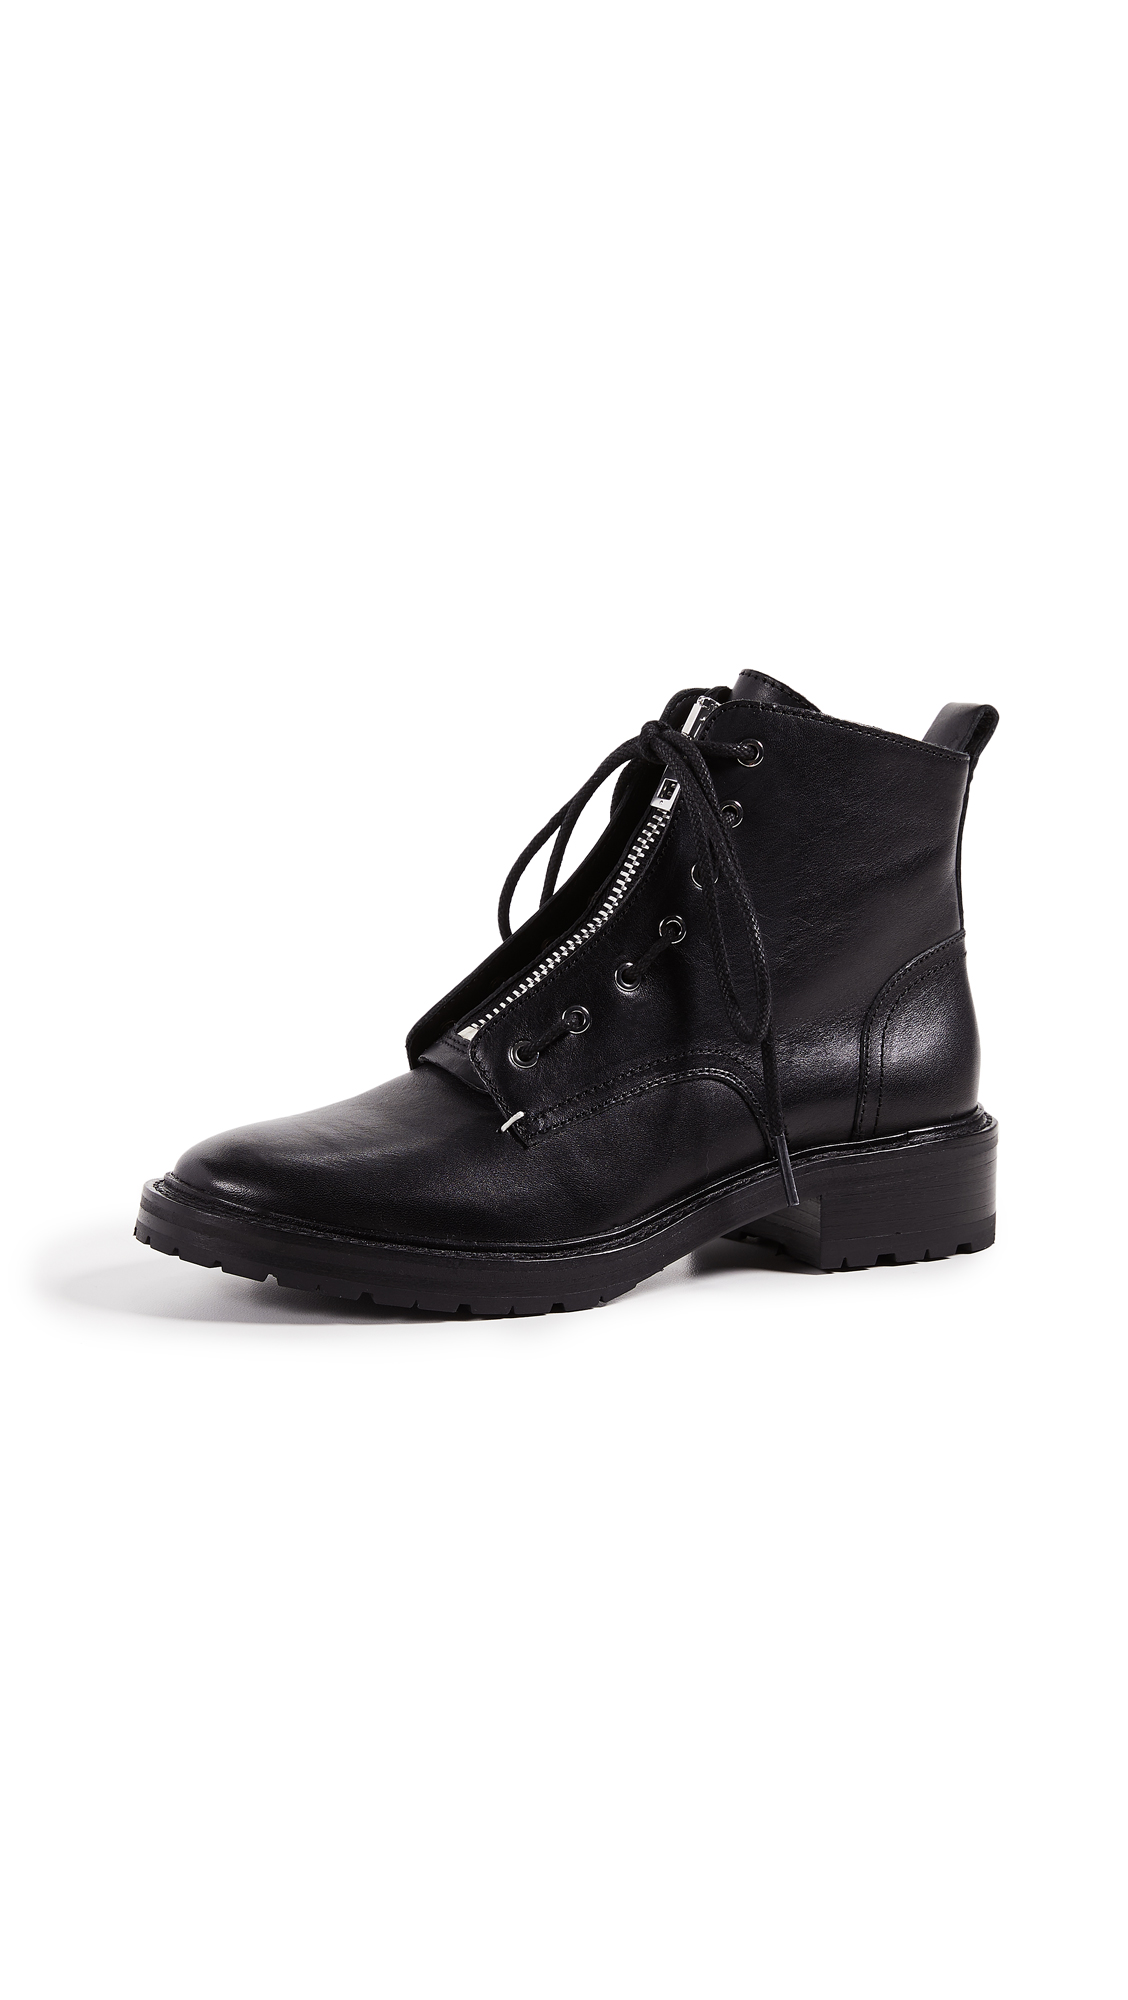 Rag & Bone Cannon Boots - Black